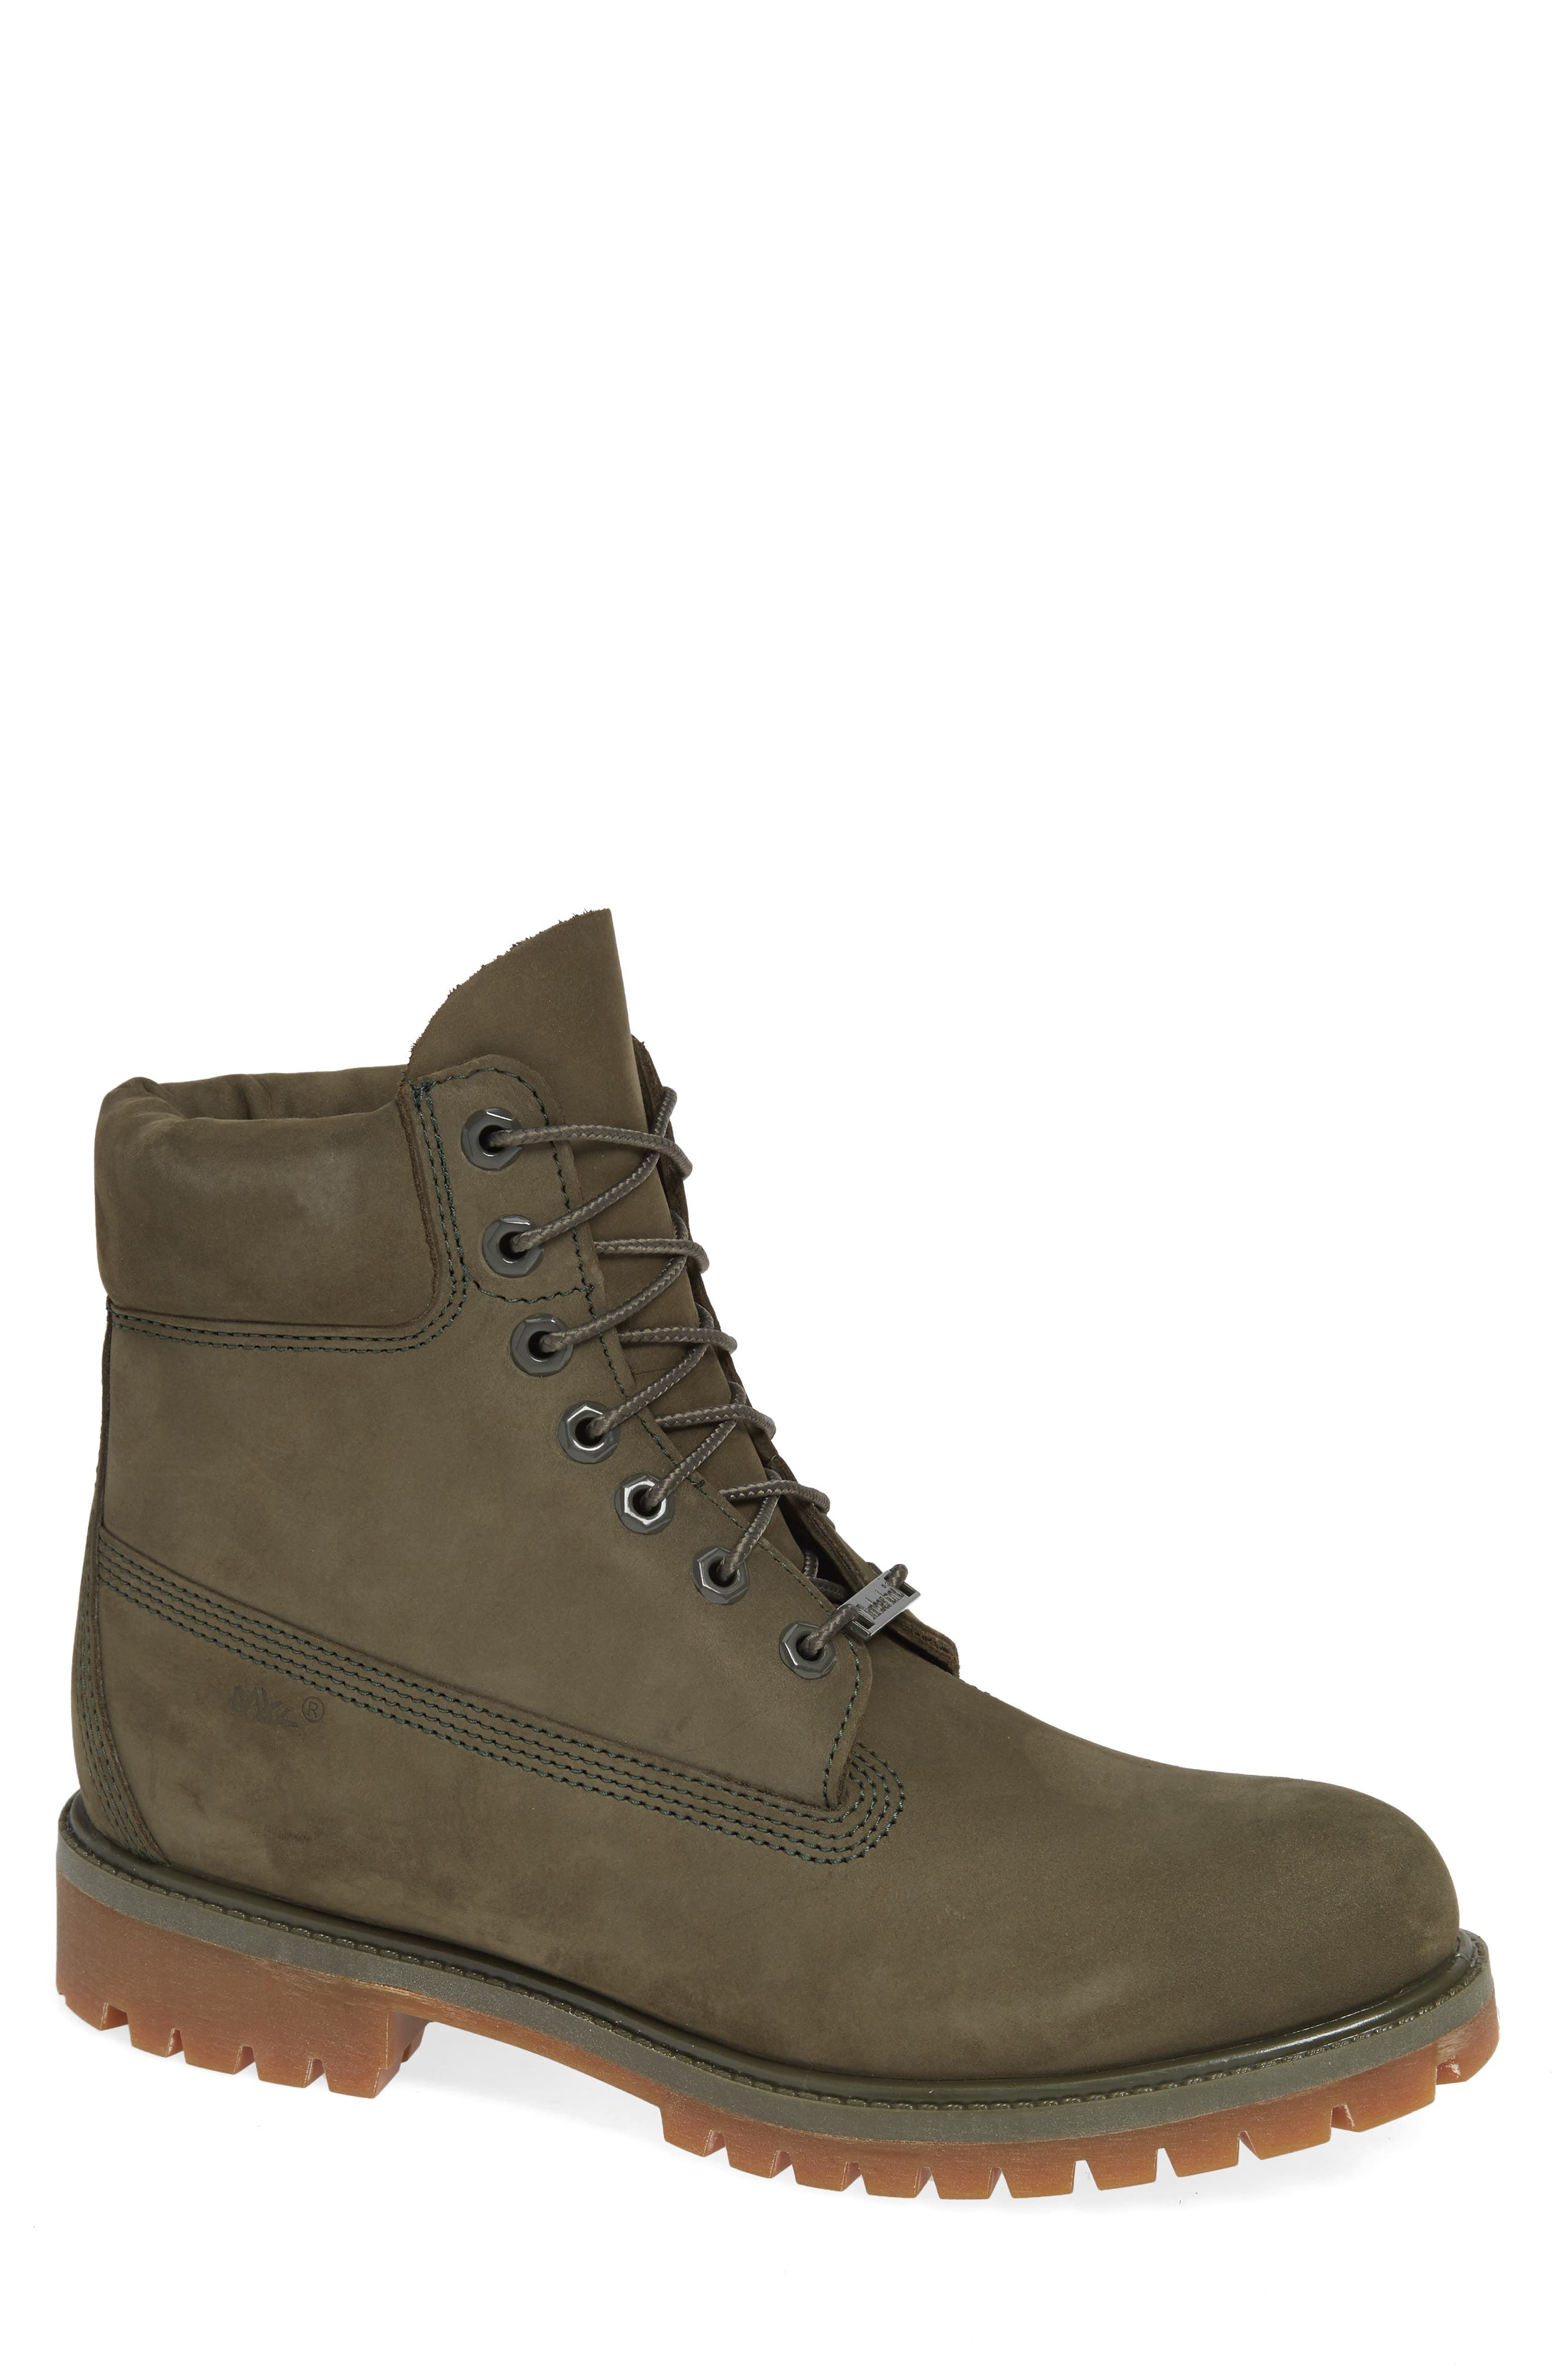 Penny bros boots